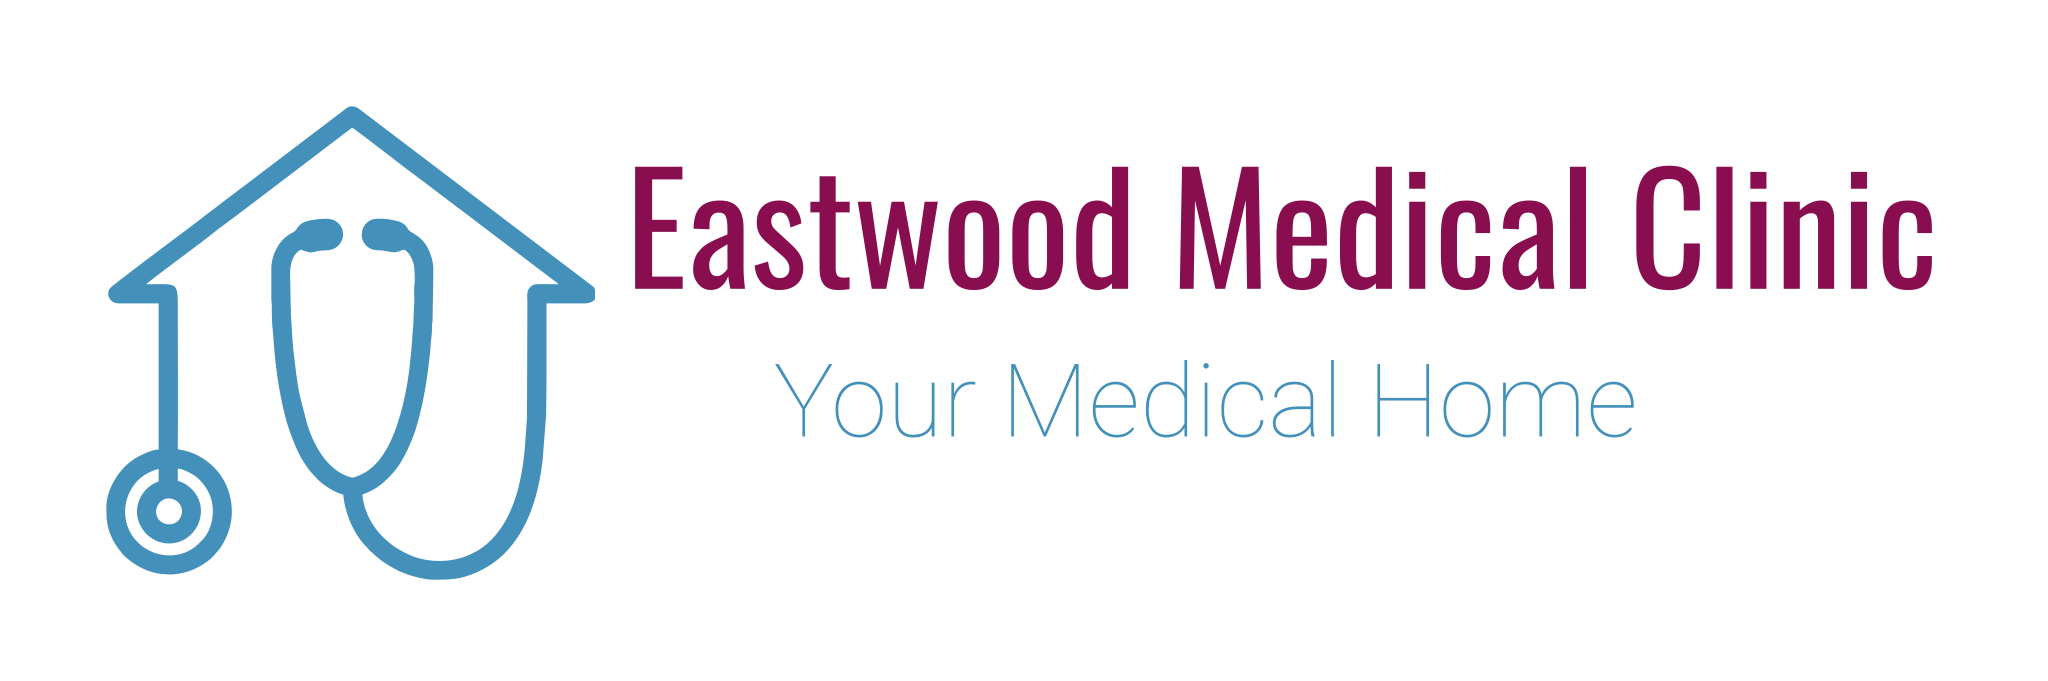 Eastwood Medical Clinic